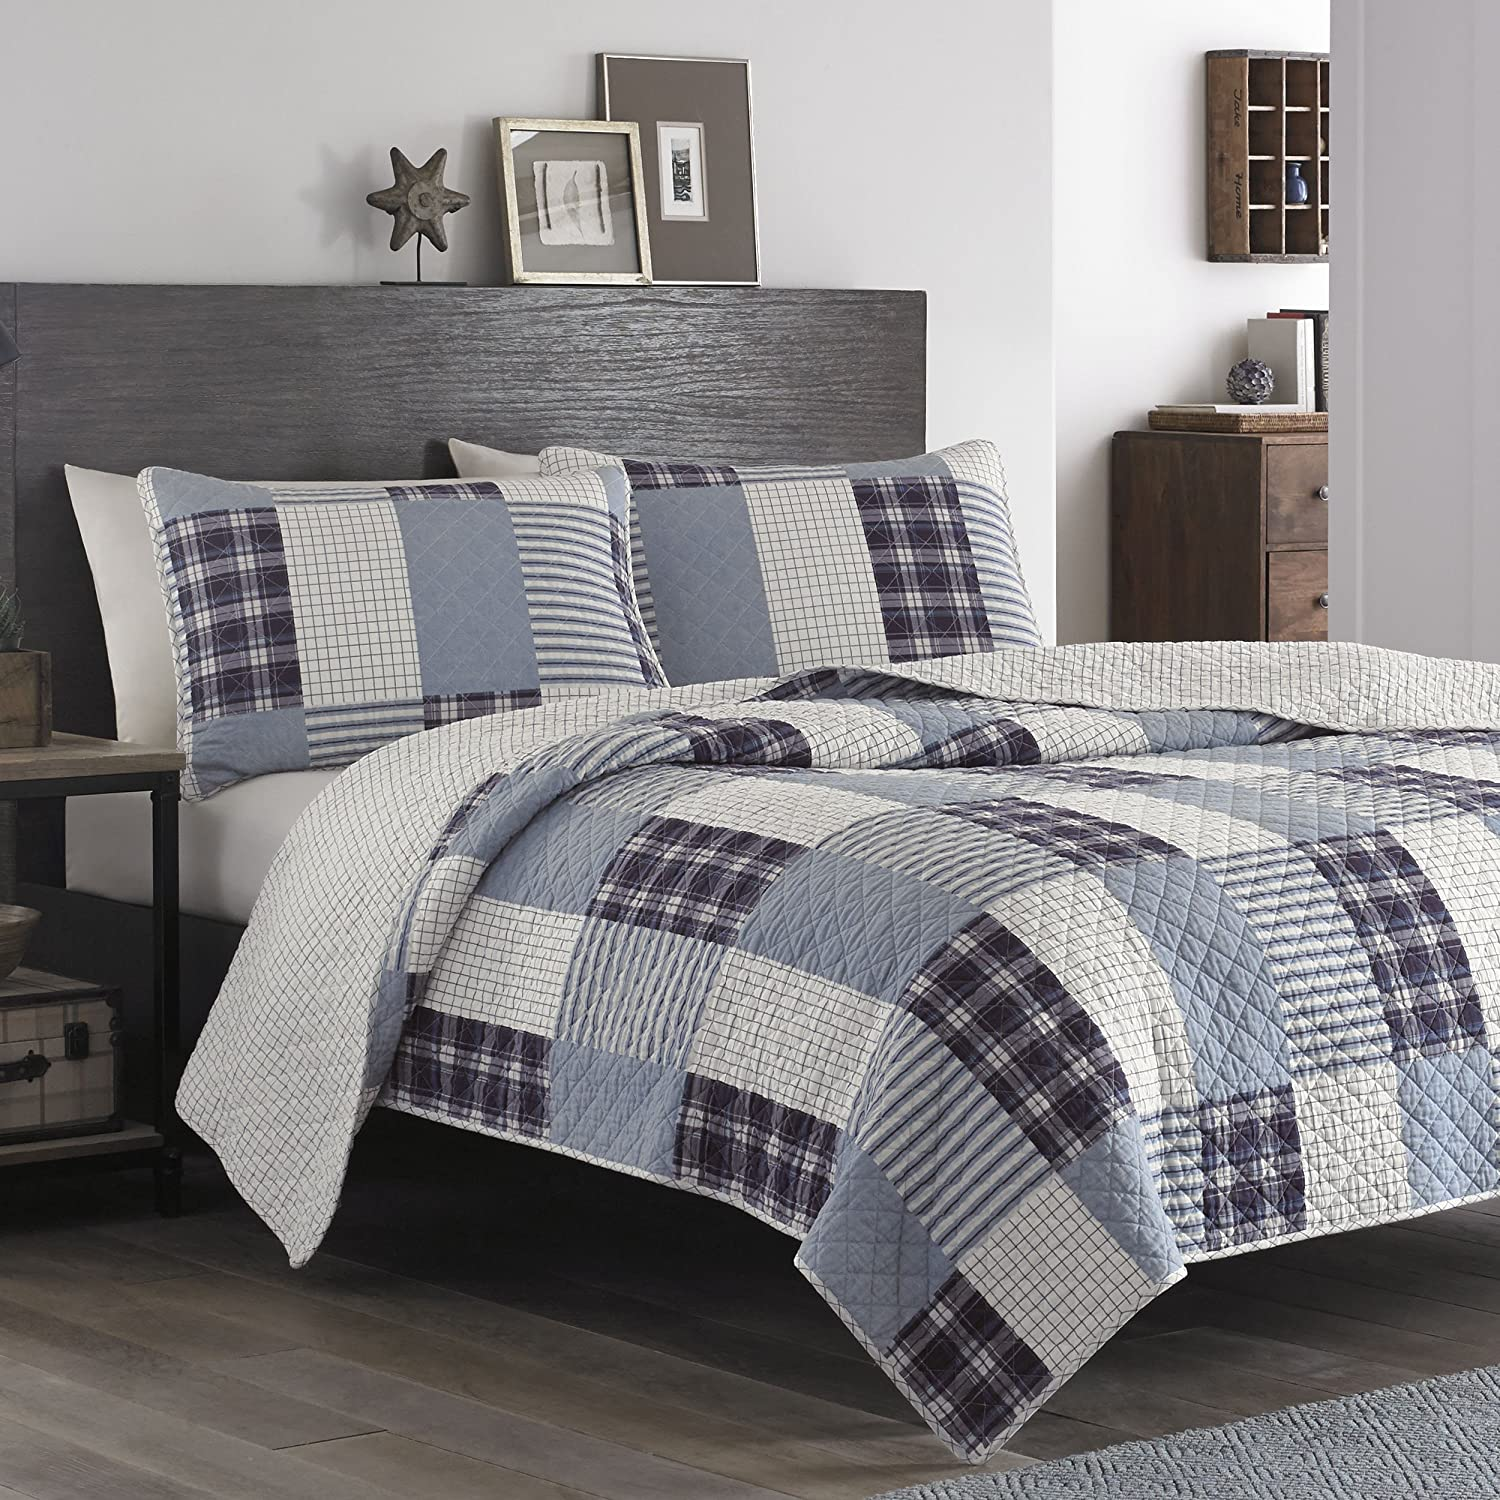 Best Eddie Bauer Quilt Bedding Sets